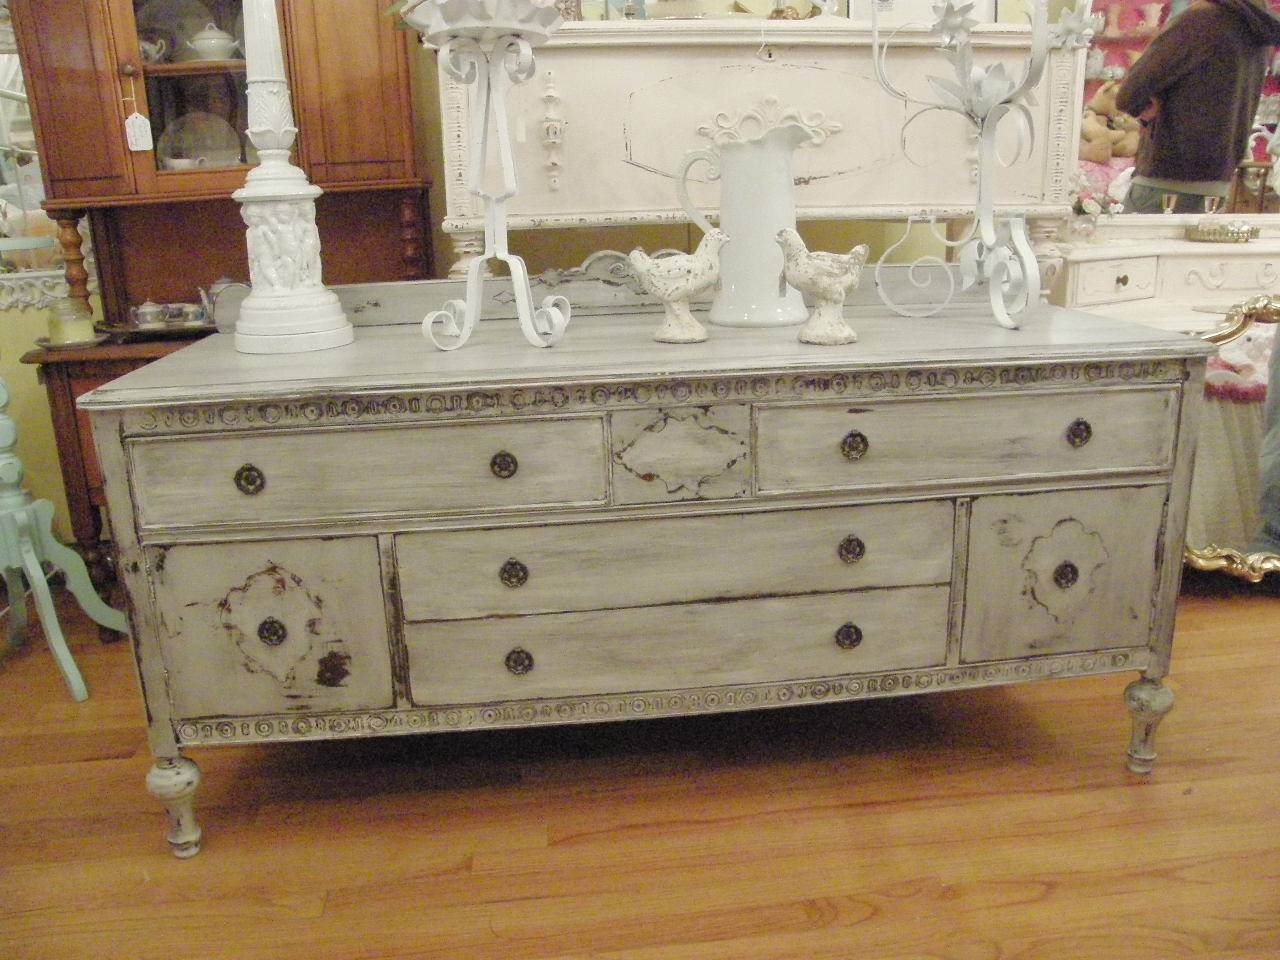 Vintage Chic Furniture Schenectady Ny: Fab Furniture I Found And intended for Antique Style Tv Stands (Image 15 of 15)